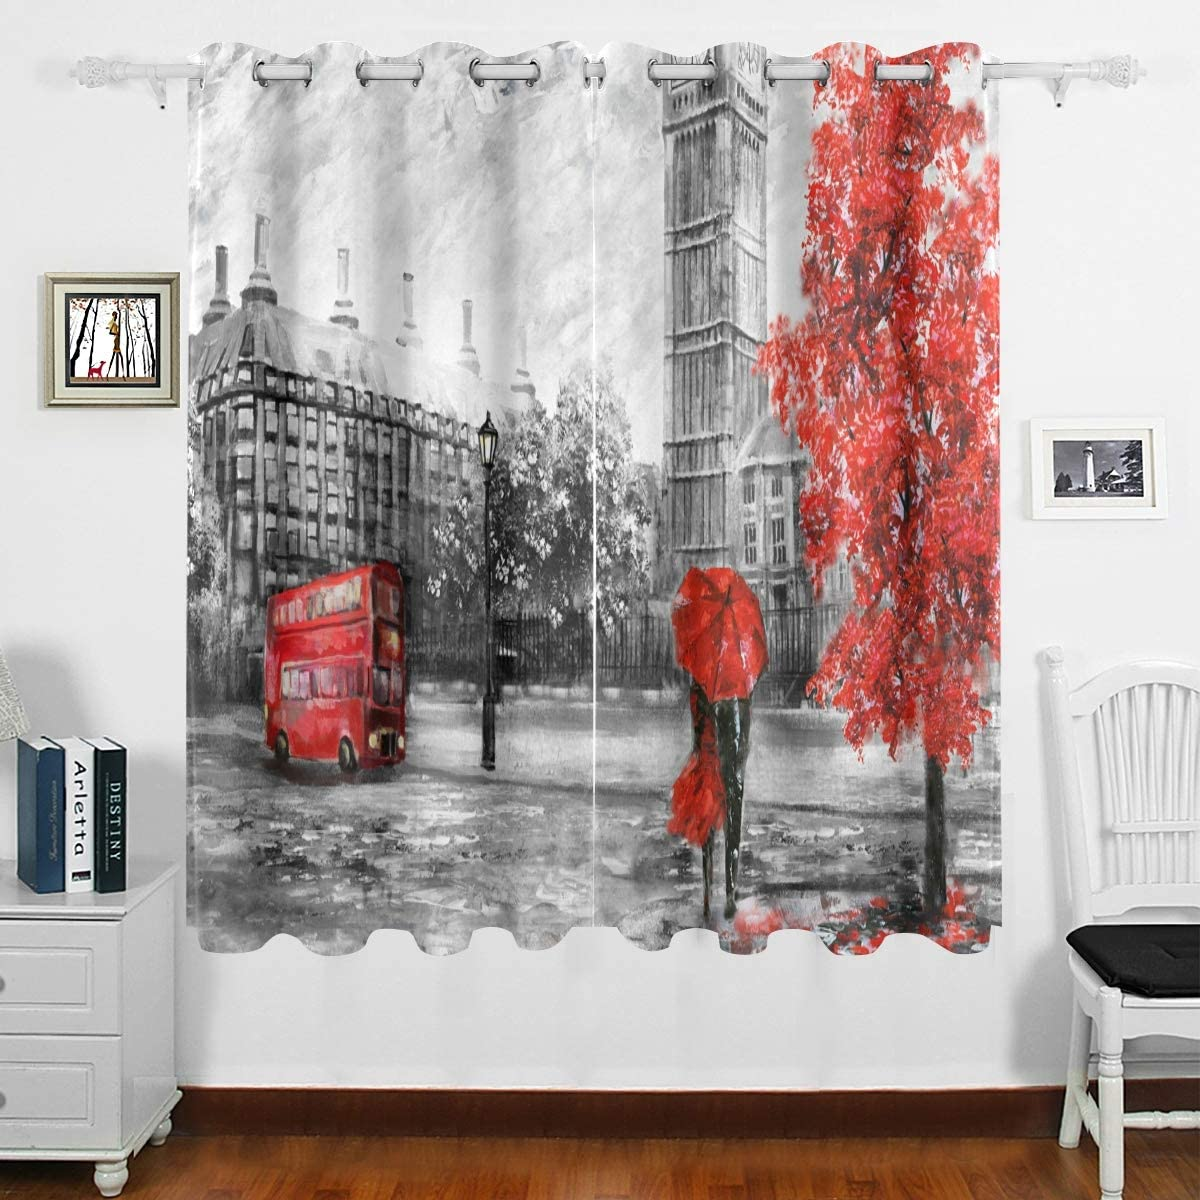 DOMIKING Bedroom Blackout Curtain for Window - Street View of London Big Ben Thermal Insulated Curtain Grommet Drapes Home Decoration for Bedroom Living Room(63x55inch)